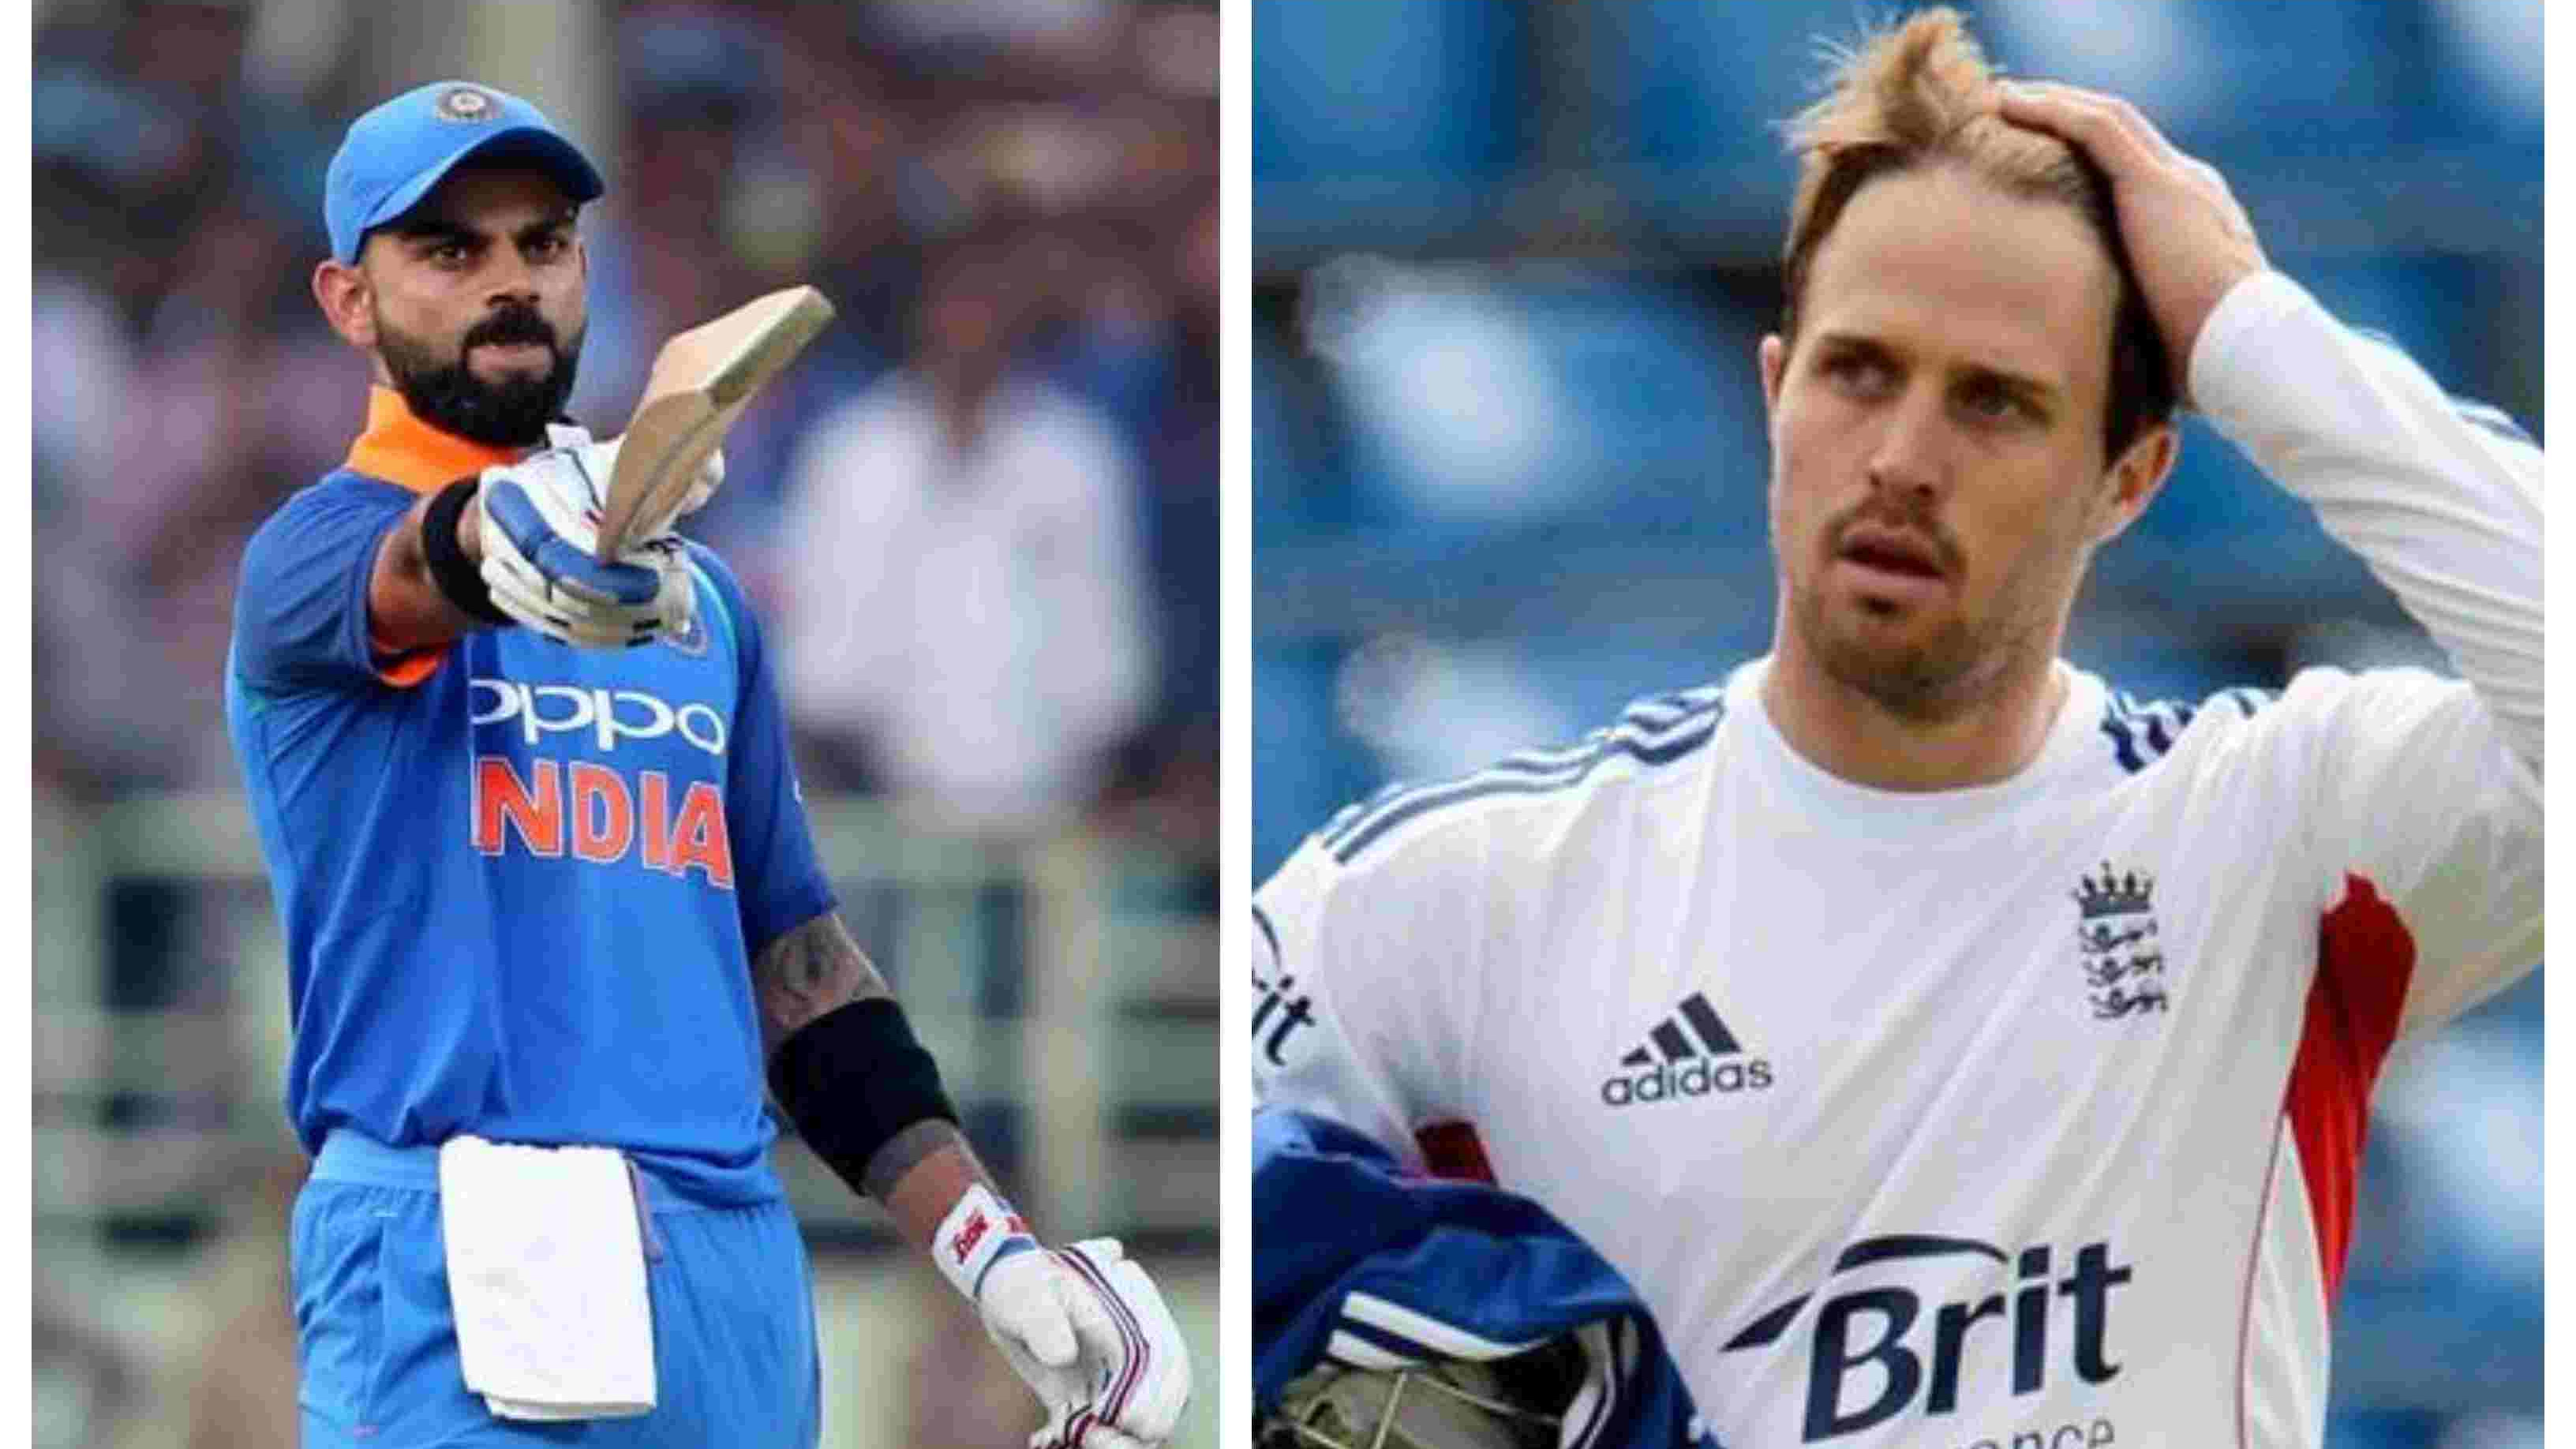 IND v WI 2018: Nick Compton takes a dig at Virat Kohli's 'consistent' performances against West Indies